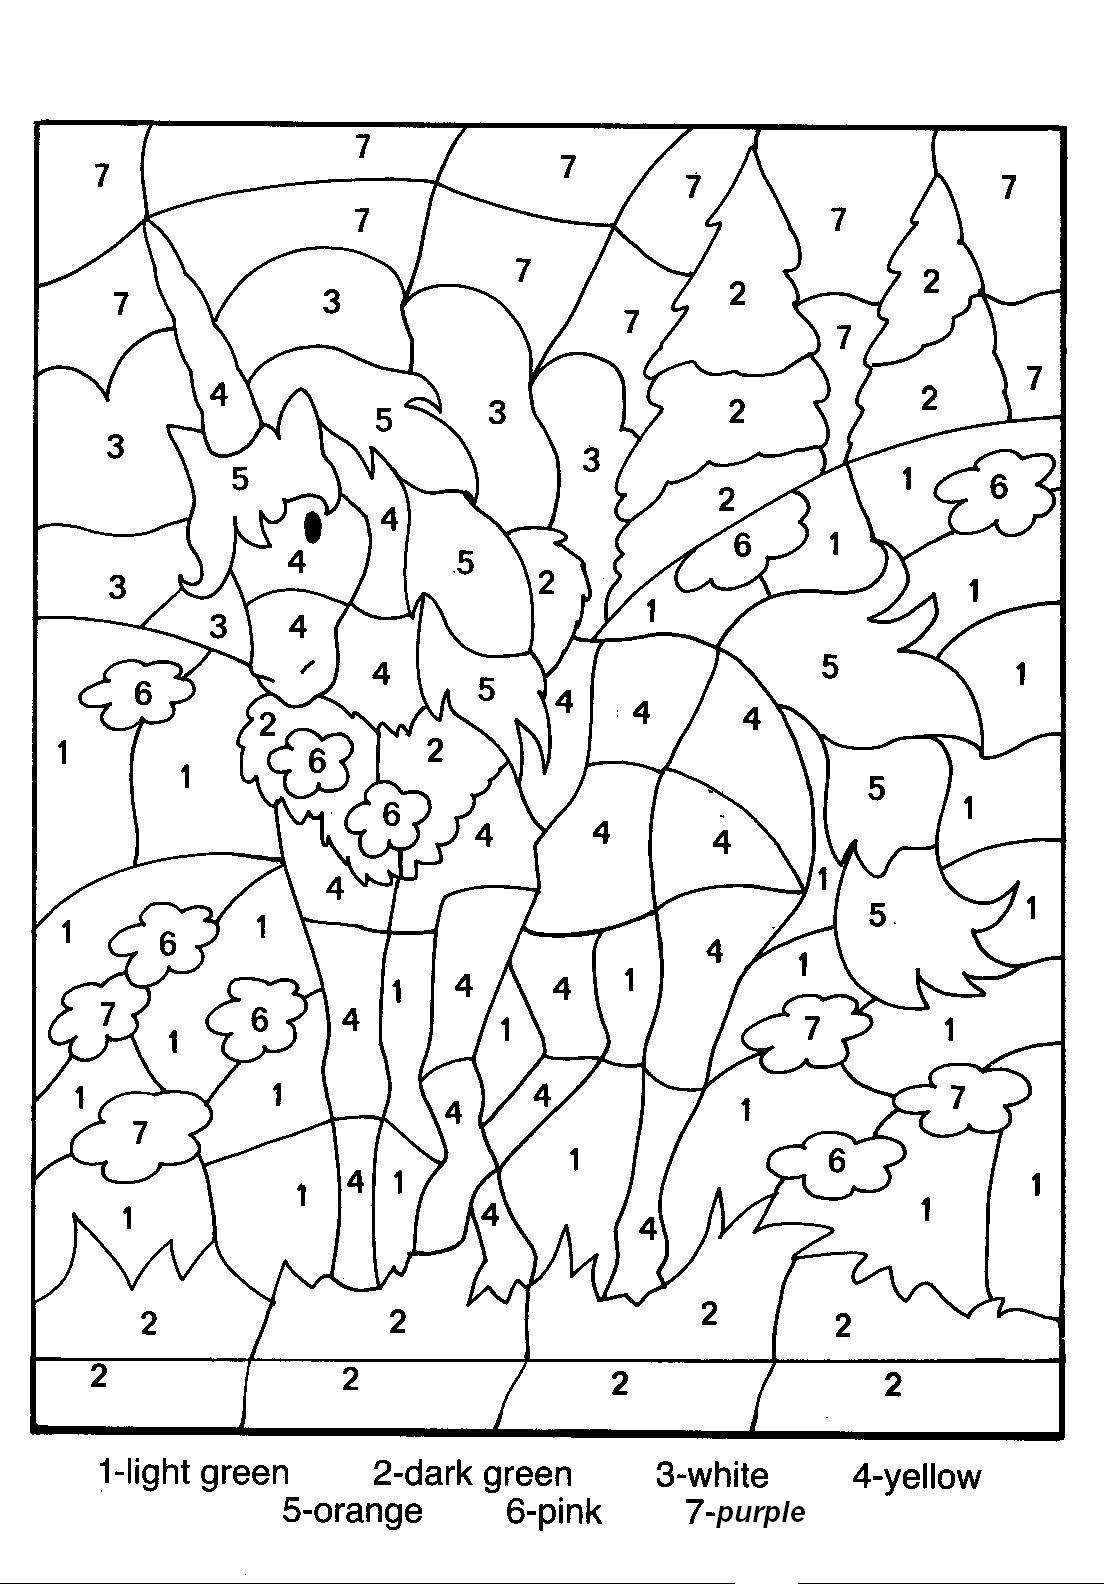 Number Coloring Pages (14)